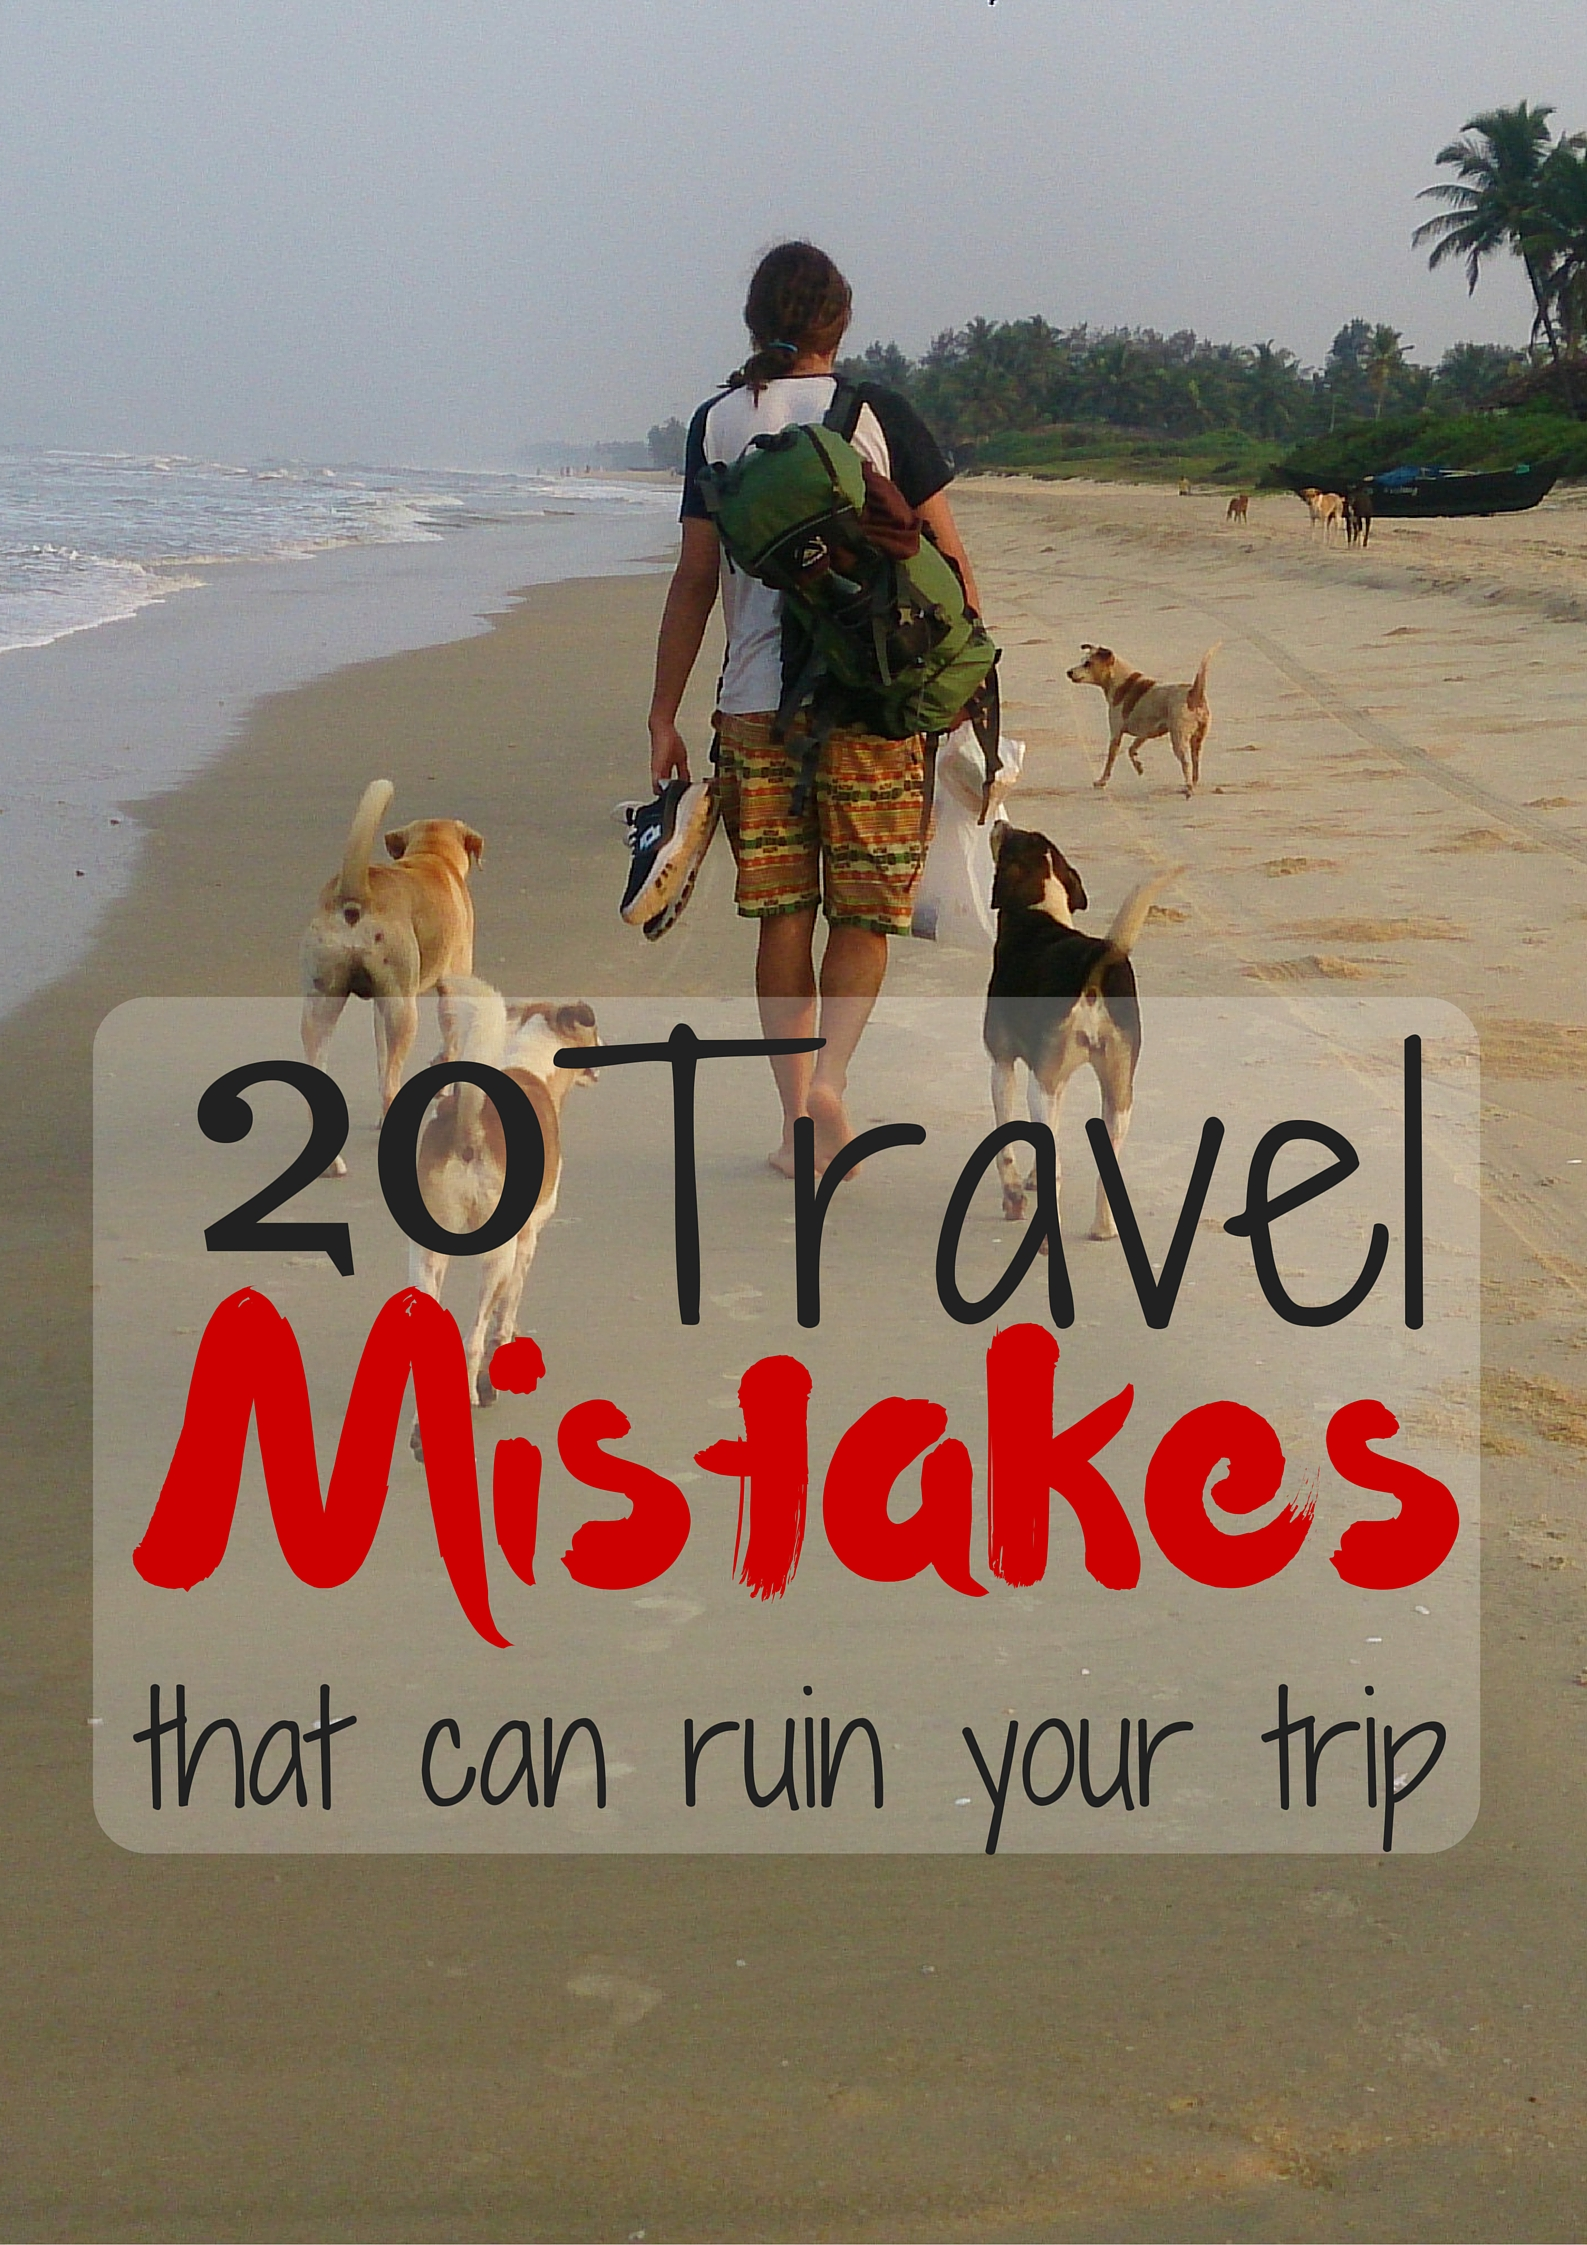 20 Travel Mistakes That Can Ruin Your Trip by Drifter Planet